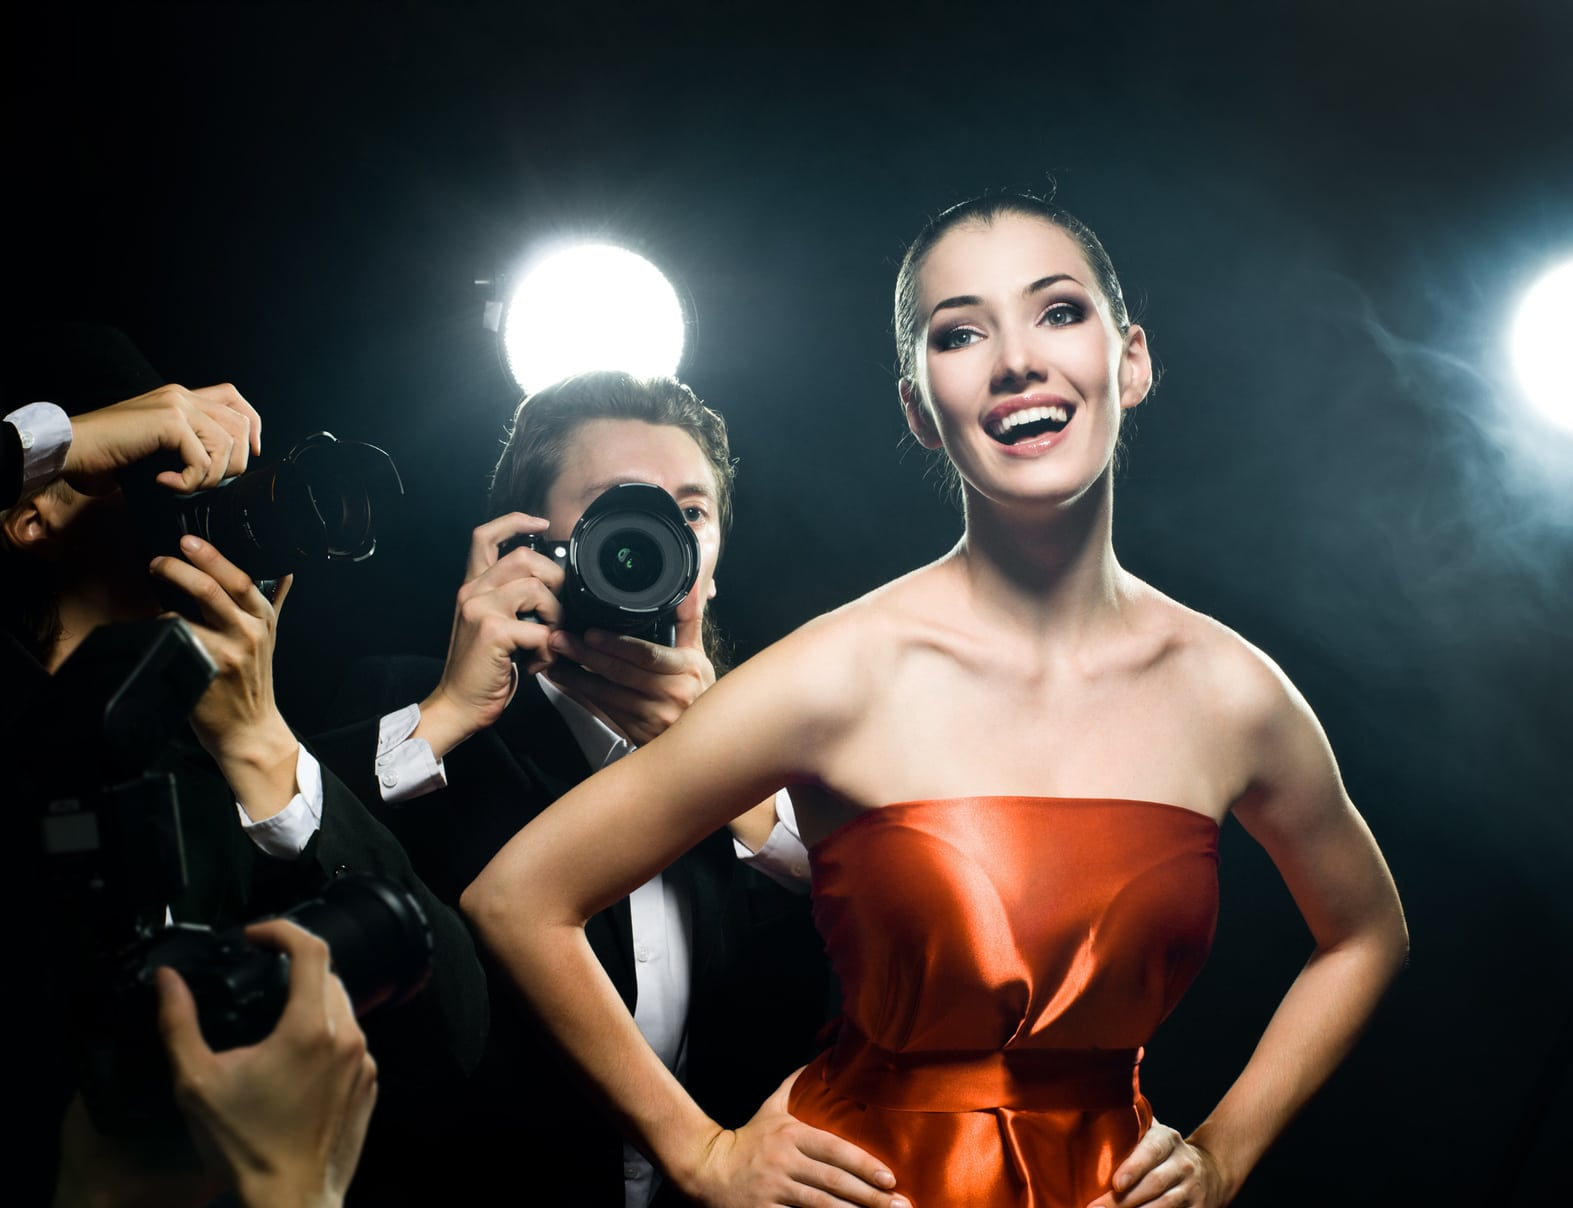 Photographers are taking a picture of a film star